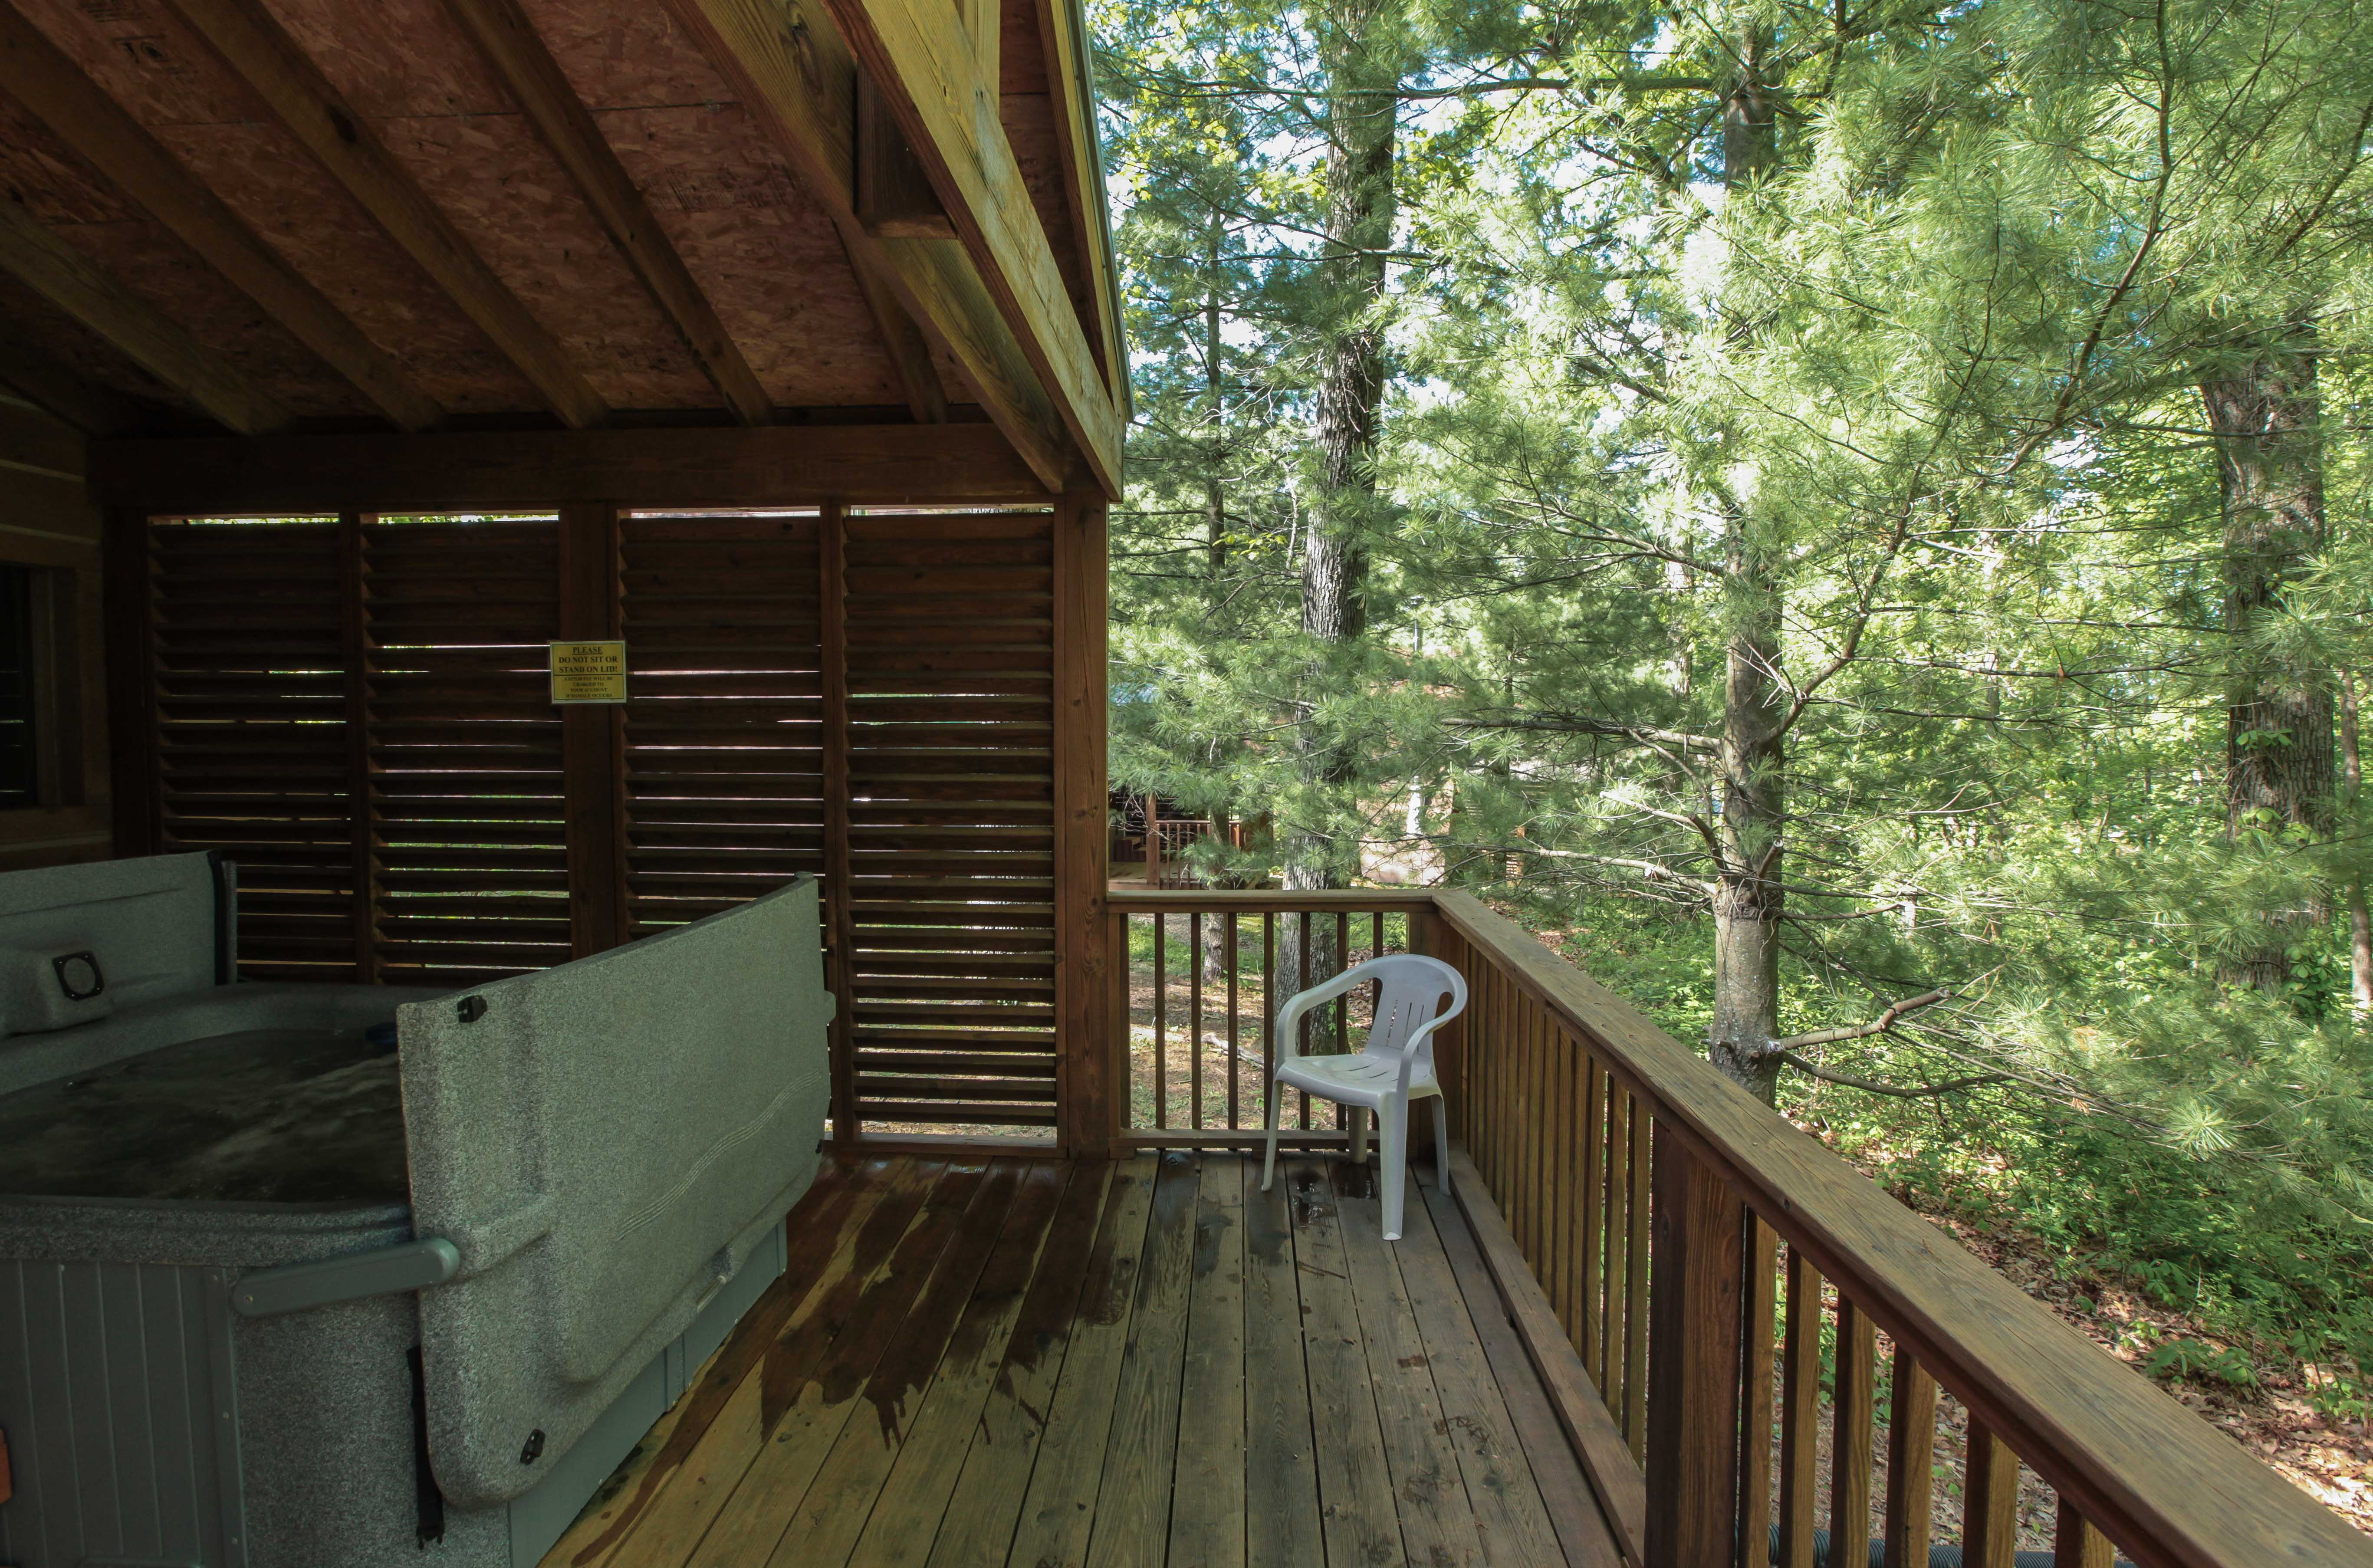 most jacuzzi elopement texas pin destination cabins our wildrose outdoor getaway private cottage the ohio hot retreat getaways tub cabin romantic and for your in perfect large